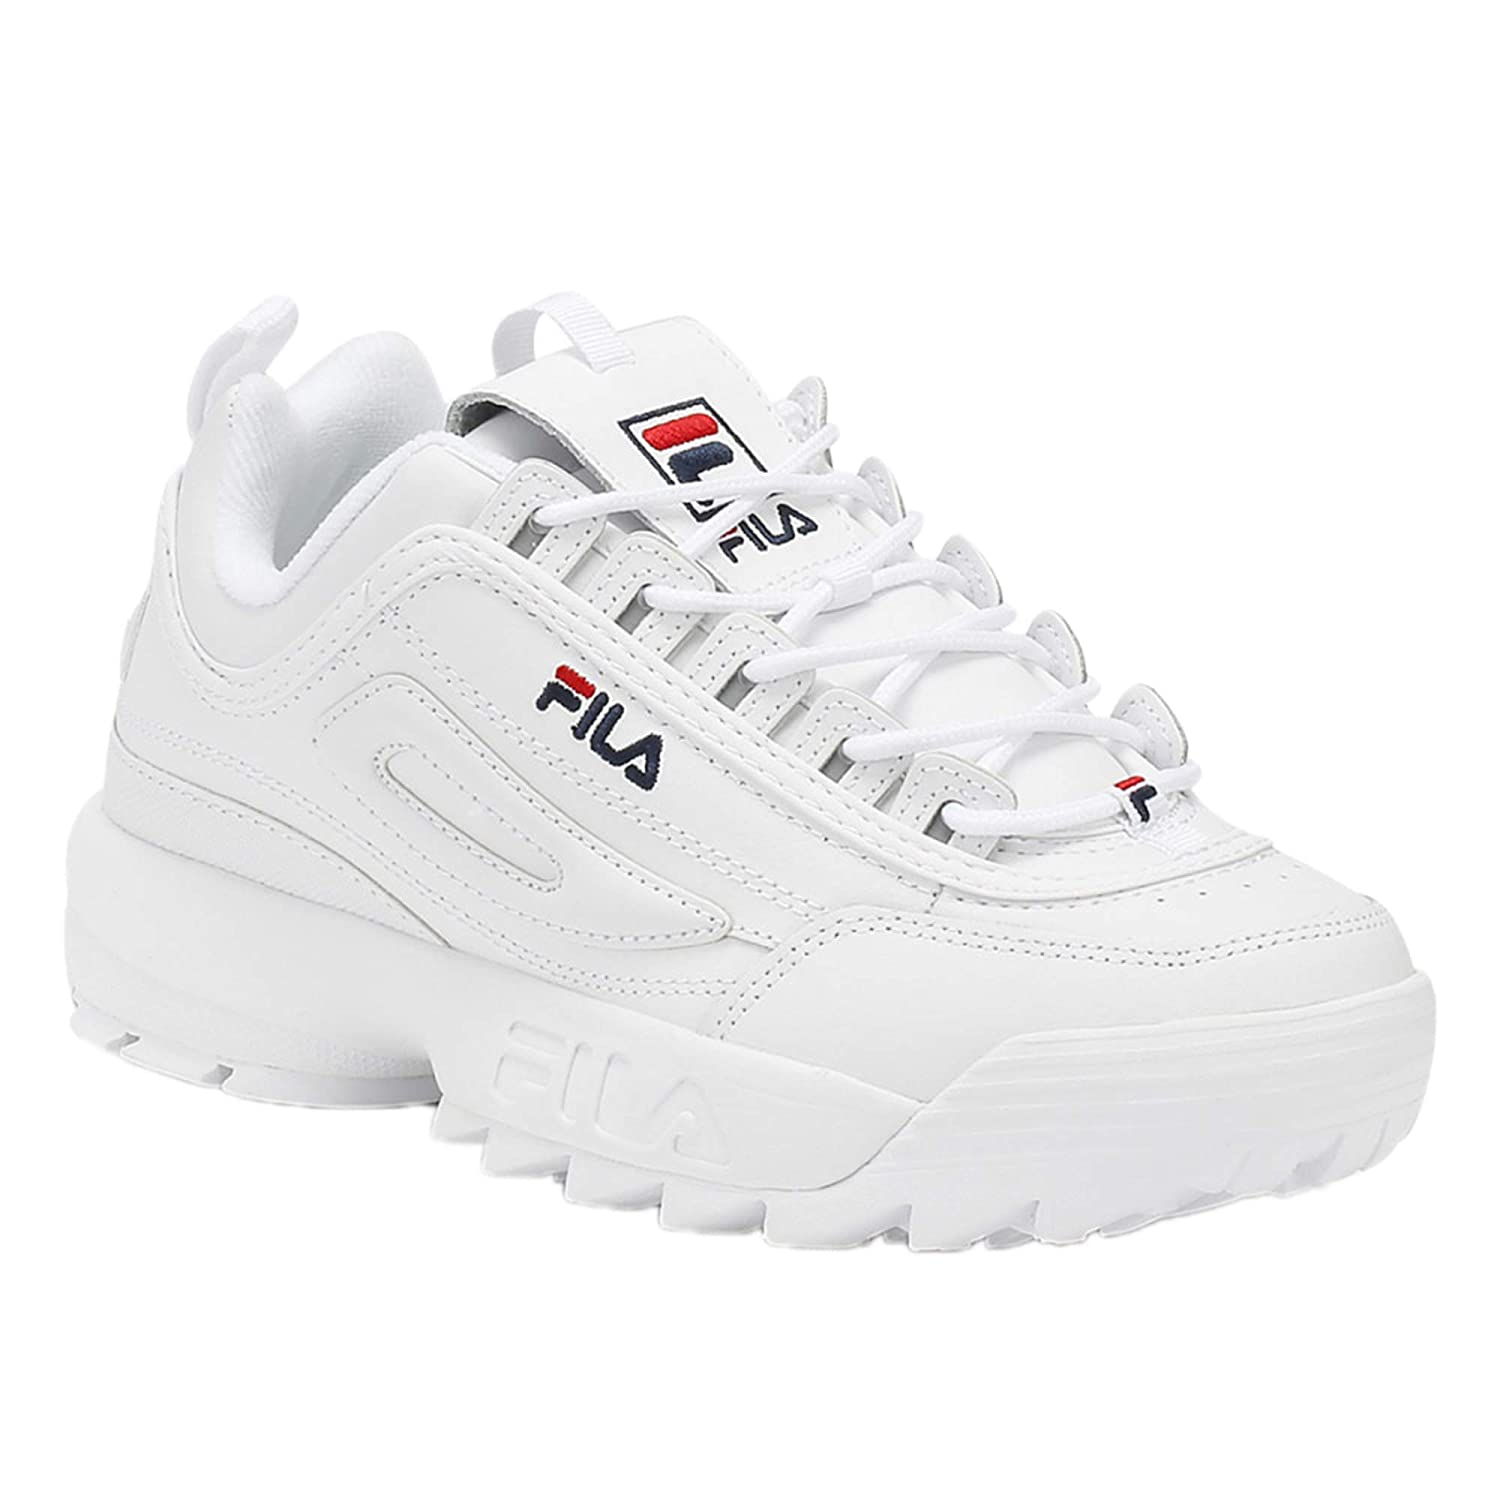 Fila Women's Disruptor II Sneaker (5, White/Navy/Red)